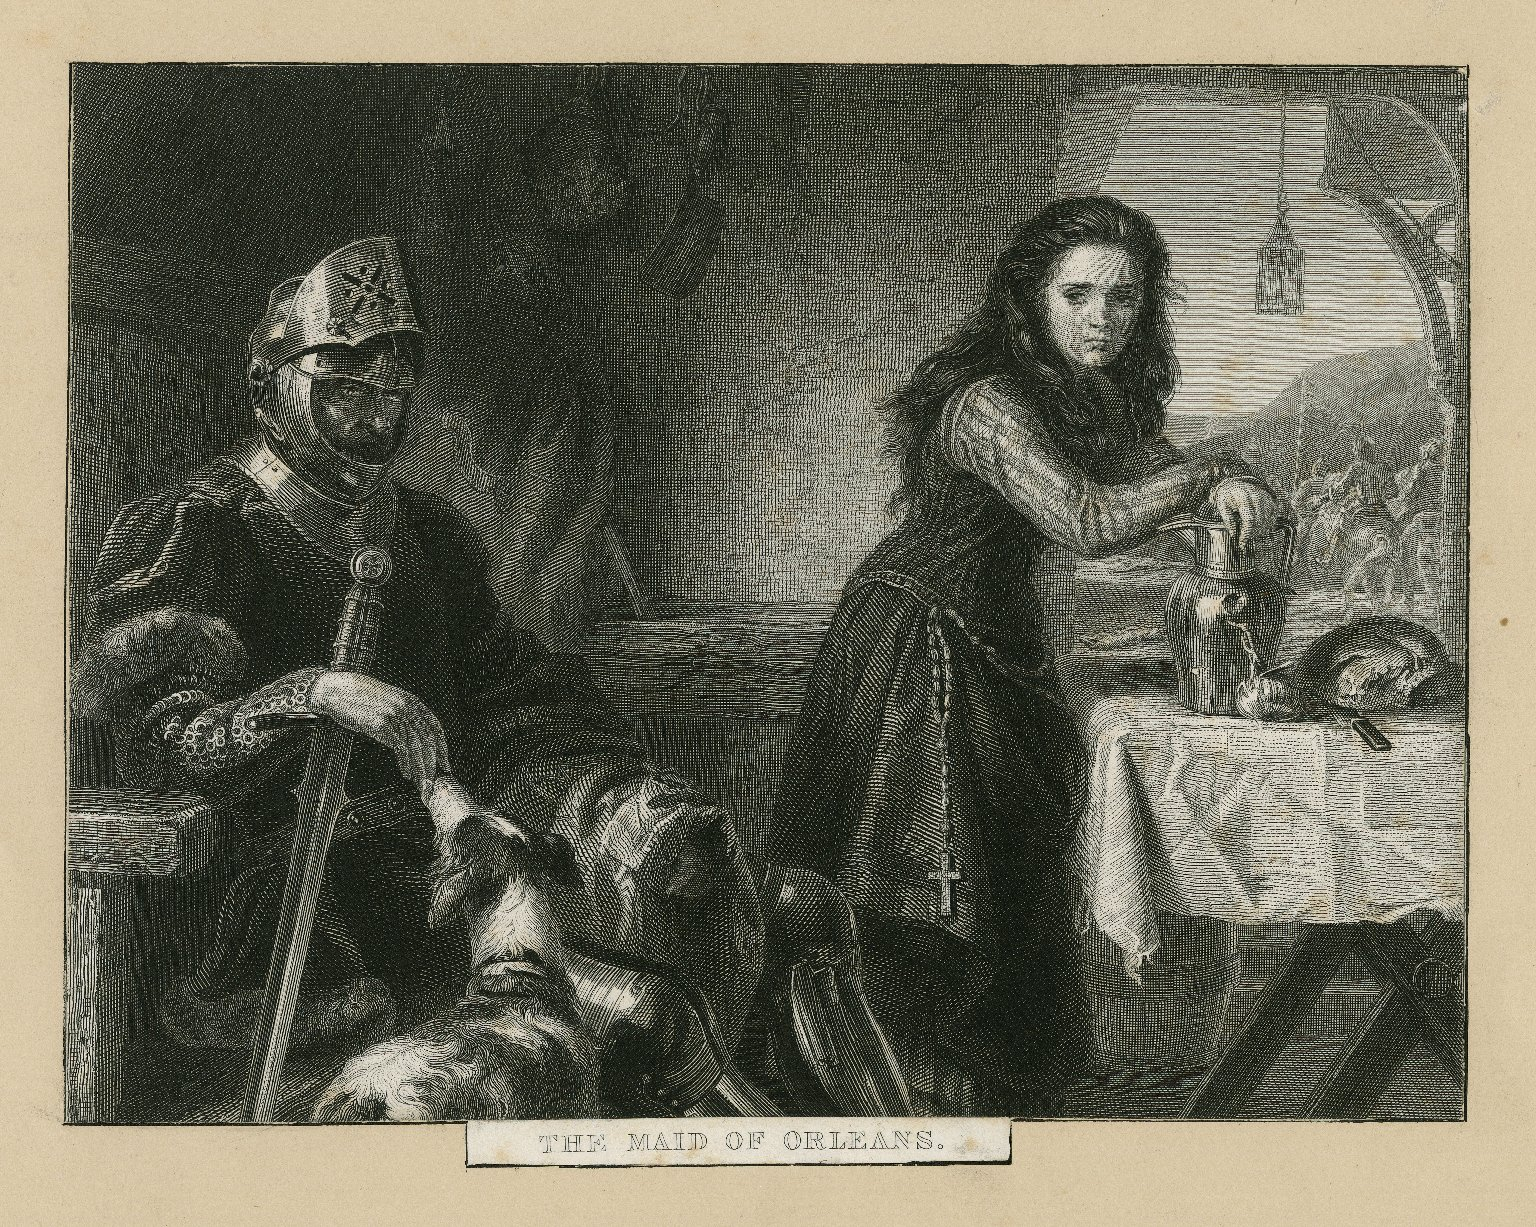 The maid of Orleans. [scene from King Henry VI, part 1, act 1, scene 2] [graphic].